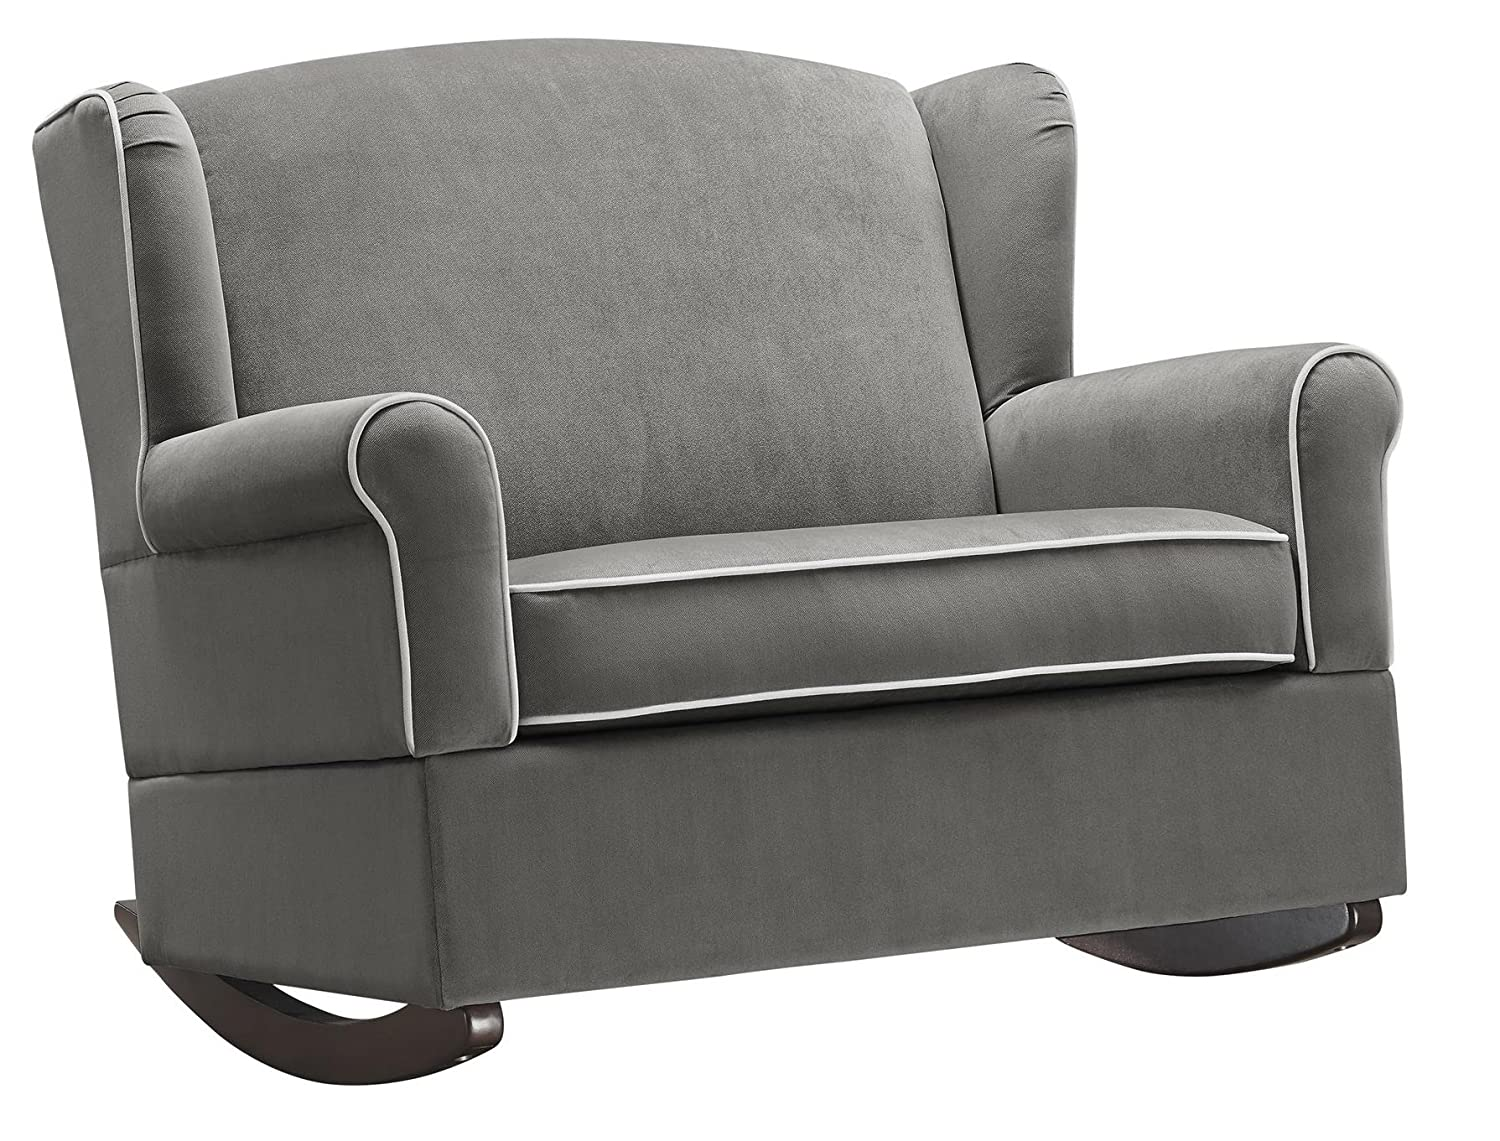 Baby Relax Lainey Wingback, Super-Wide Nursery Rocker, Graphite Gray - Color: Gray Dorel Home Furnishings DA6735-GR